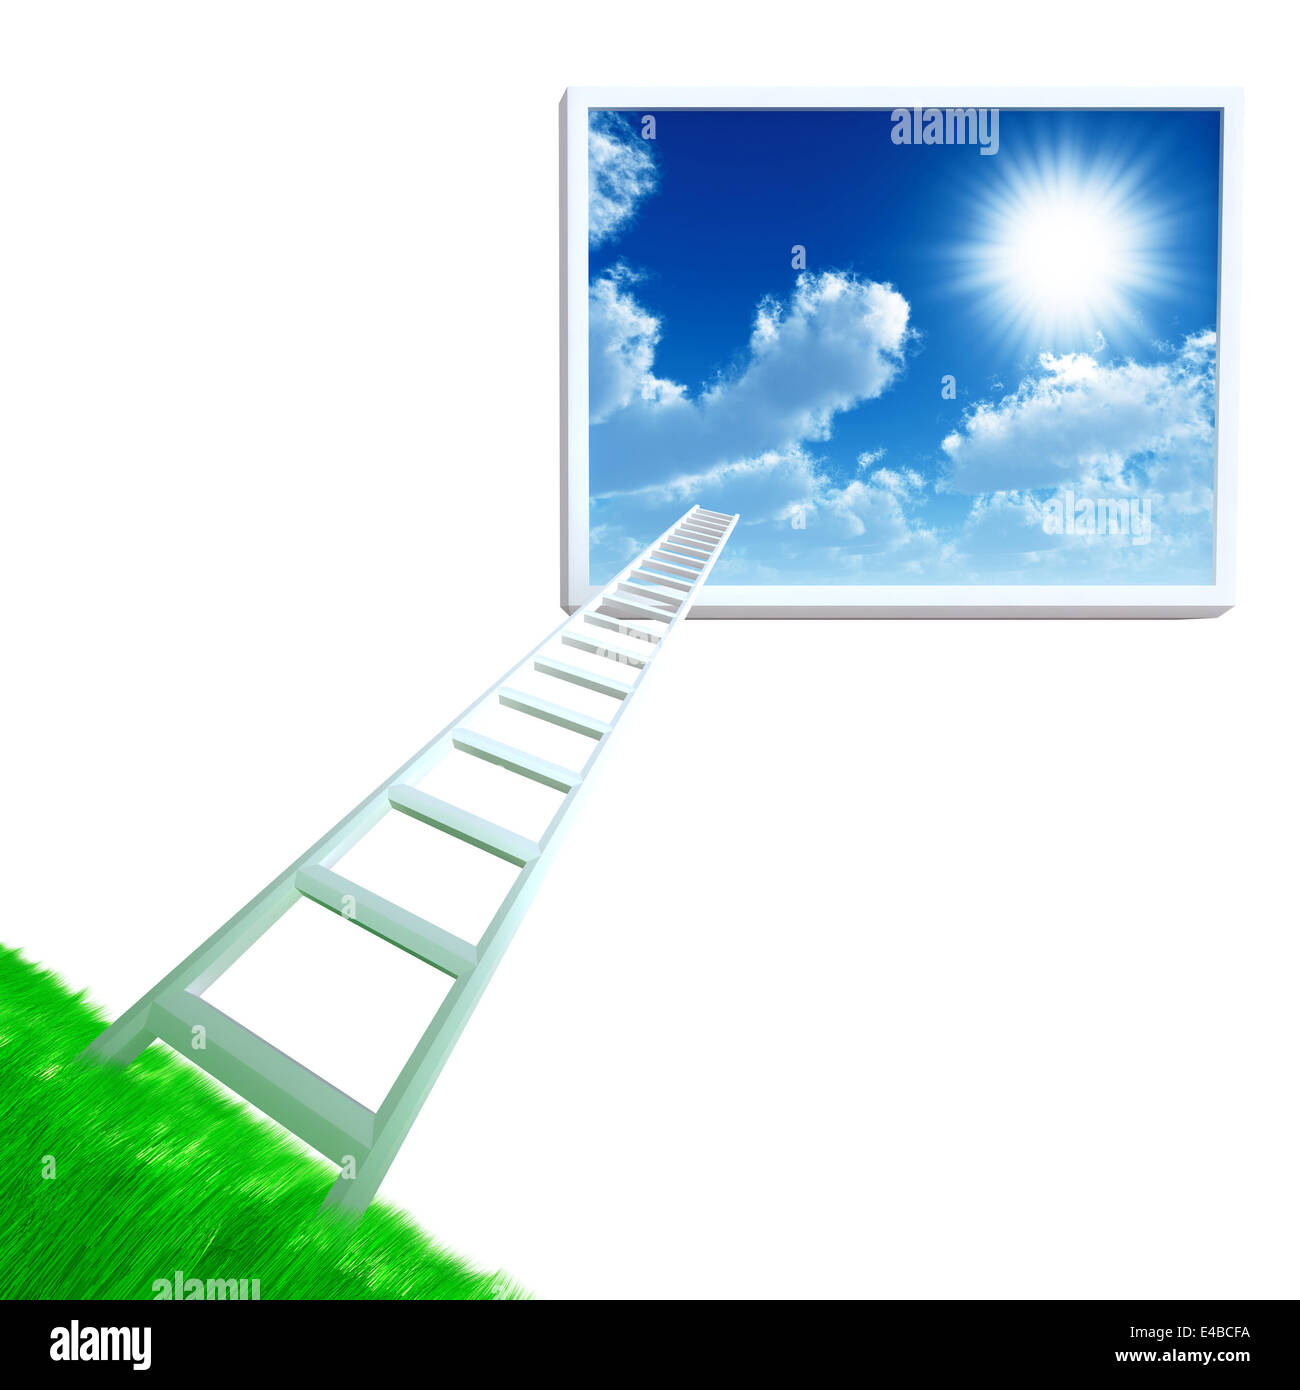 stair is get away from land in cloudy sky - Stock Image